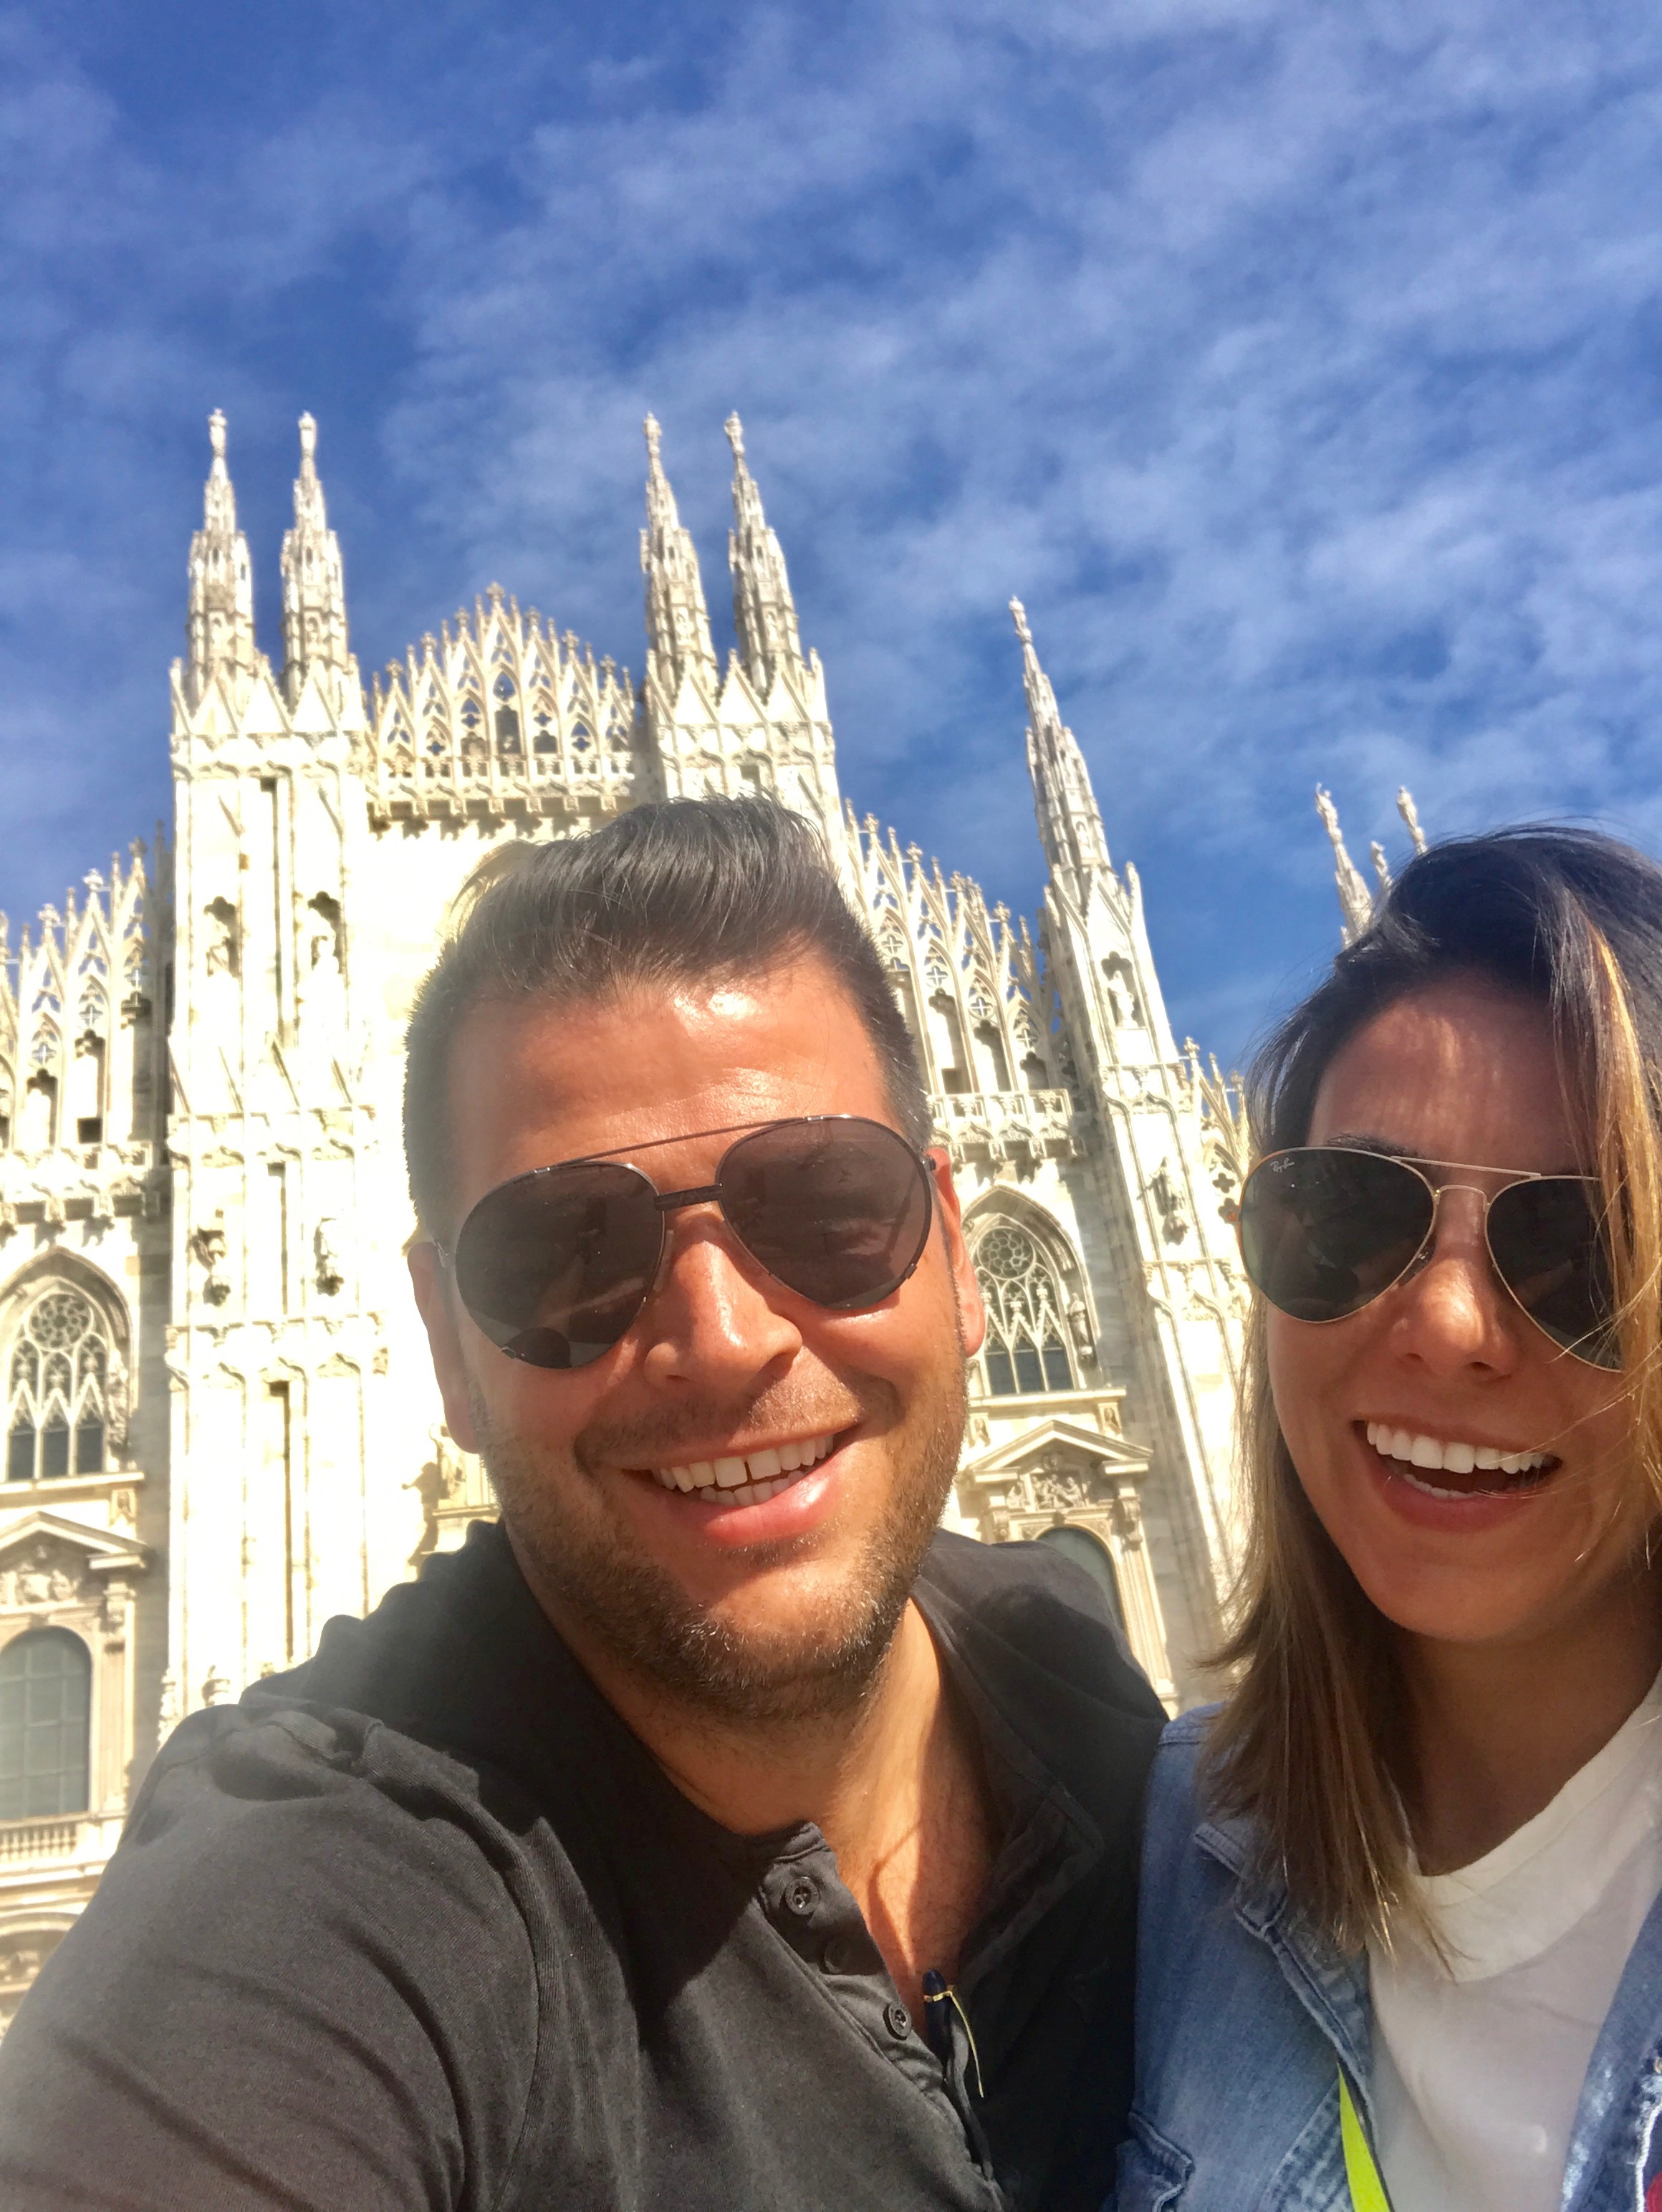 Chef Nicholas Stefanelli and his wife Romie recently took a trip to Italy with some show-stopping meals! (Image: Courtesy Nicholas Stefanelli)